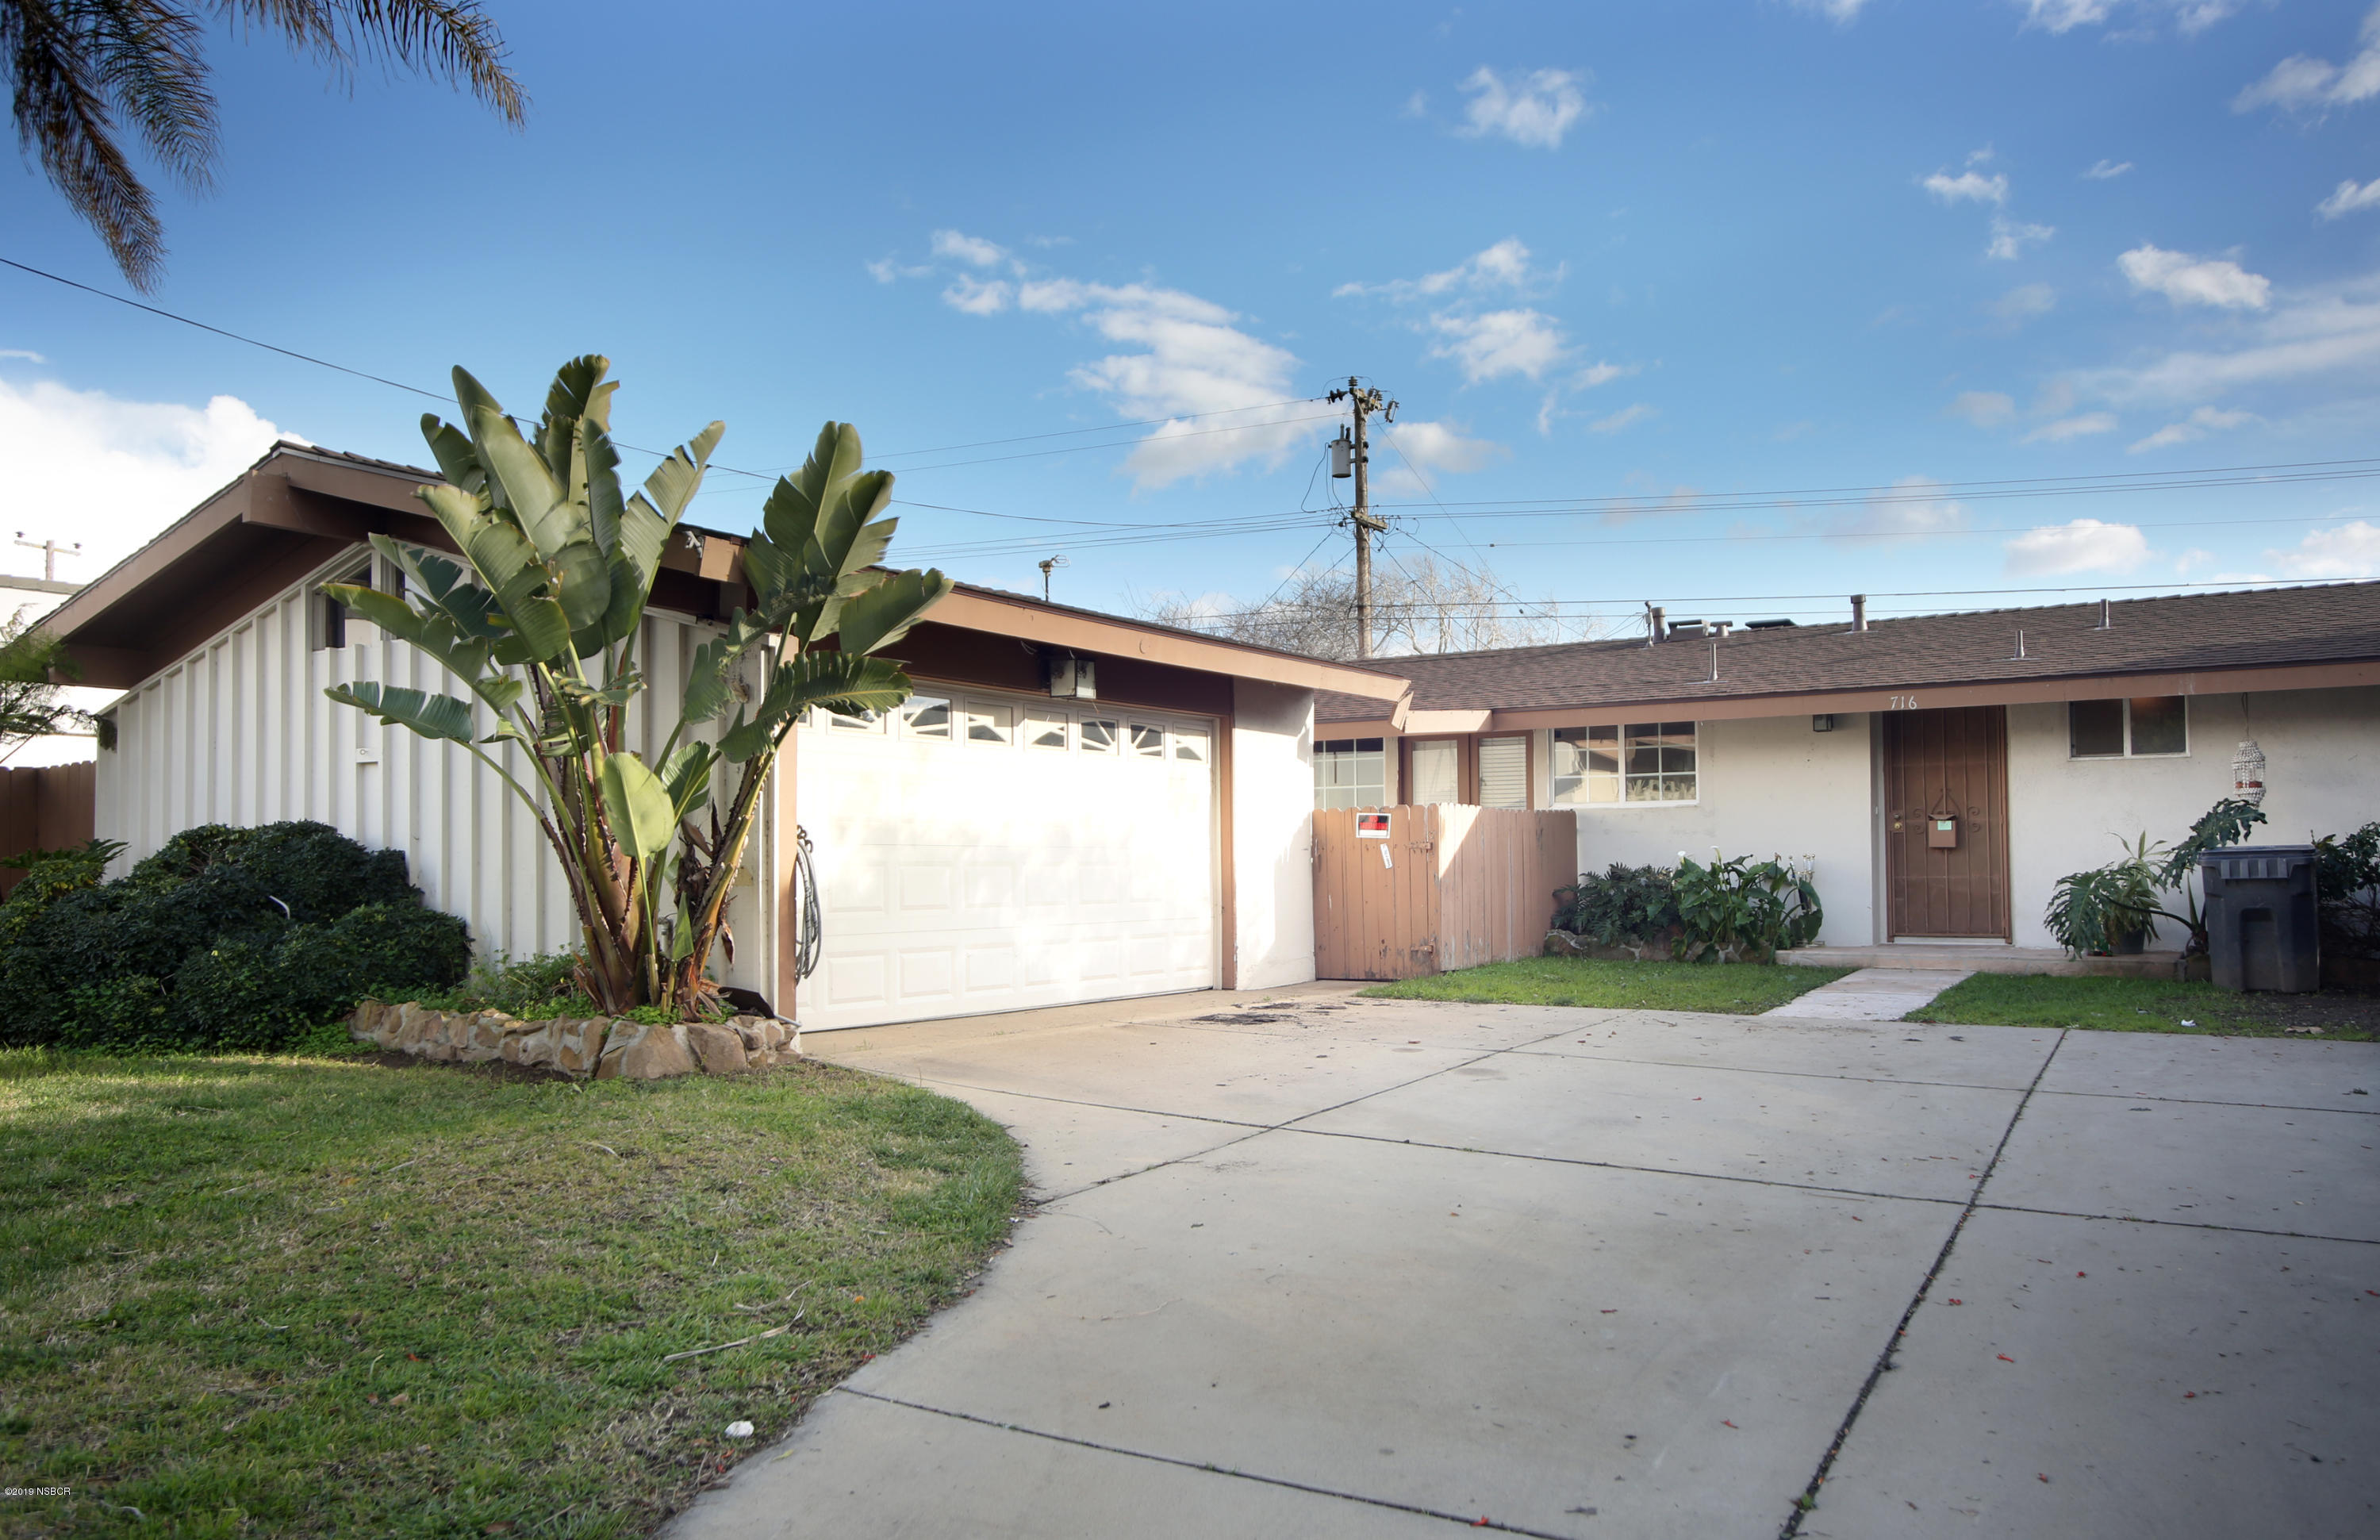 Santa Maria Homes for Sale -  New Listings,  716 E Fesler Street